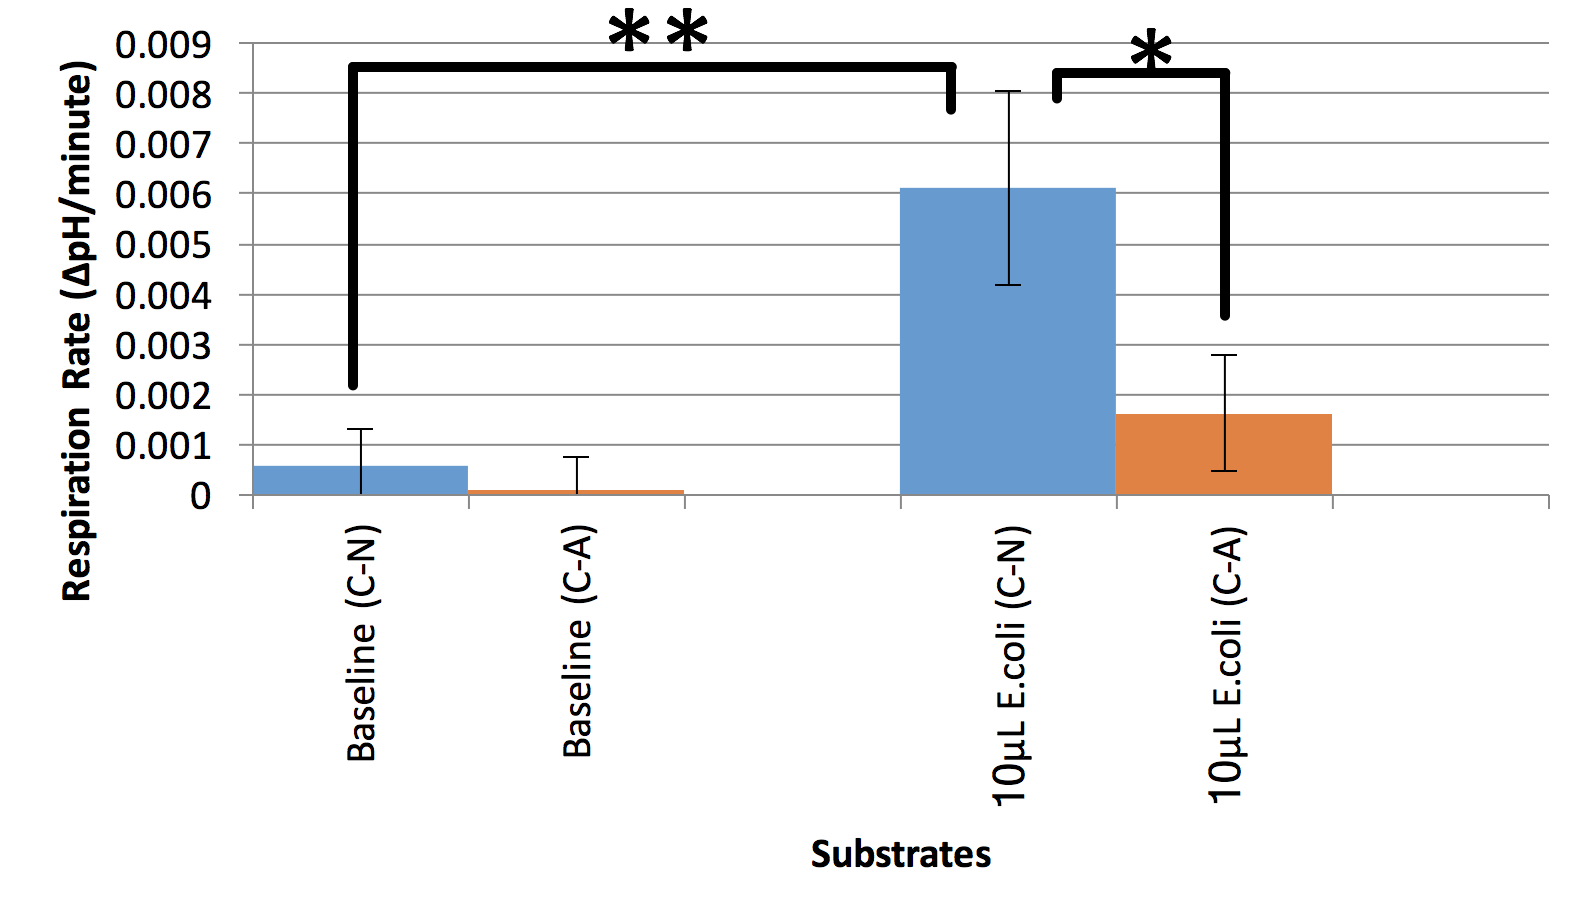 Figure 6. Baseline experiments ( n  = 12), 10 µL E. coli ( n  = 8), and 30 µL E. coli ( n  = 4).  The means of the trials are graphed. Respiration rate was determined by finding the slope between 20 minutes and 50 minutes. Unpaired t-test: equal variance, one-tail showed significance ( p  < 0.05*,  p  < 0.005**).